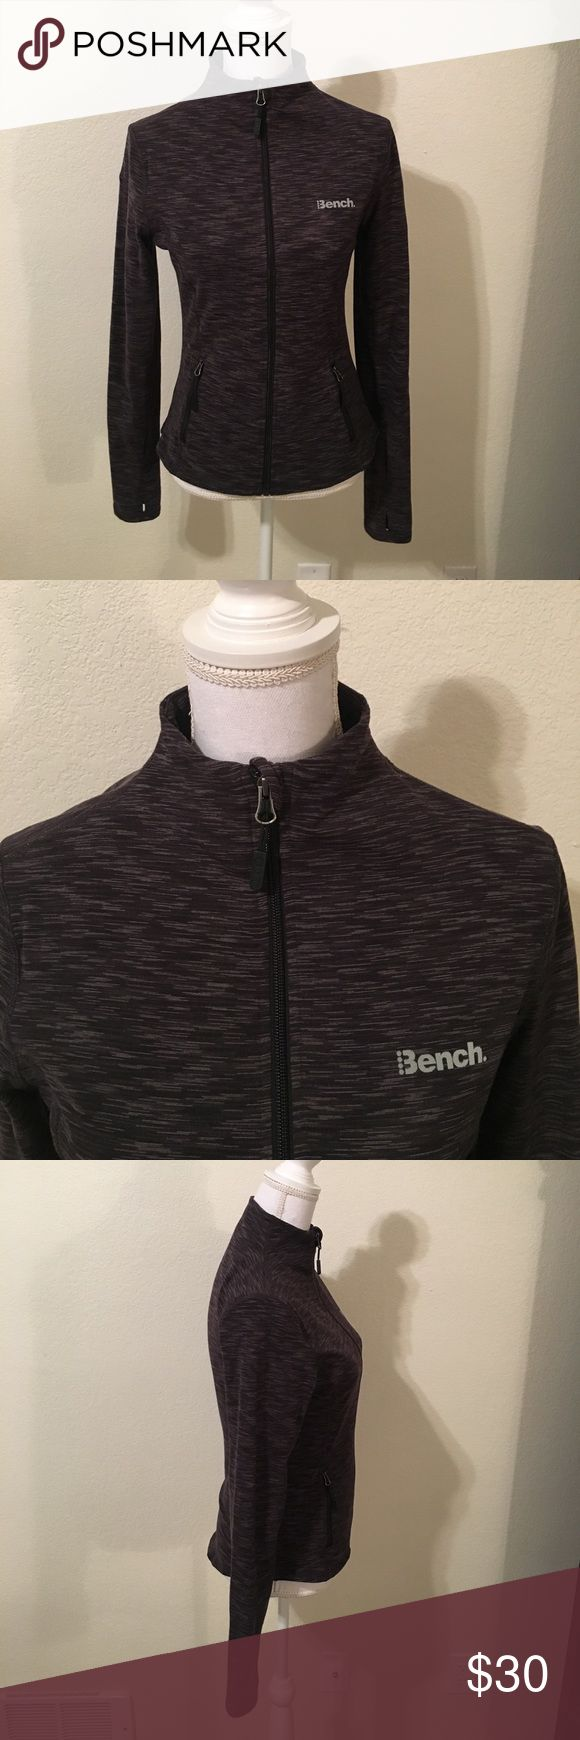 NWOT Bench Athletic Jacket. NWOT.  Bench Athletic Jacket.  Size M. Women's.   Thumb holes.  Excellent Condition!!! Bench Jackets & Coats